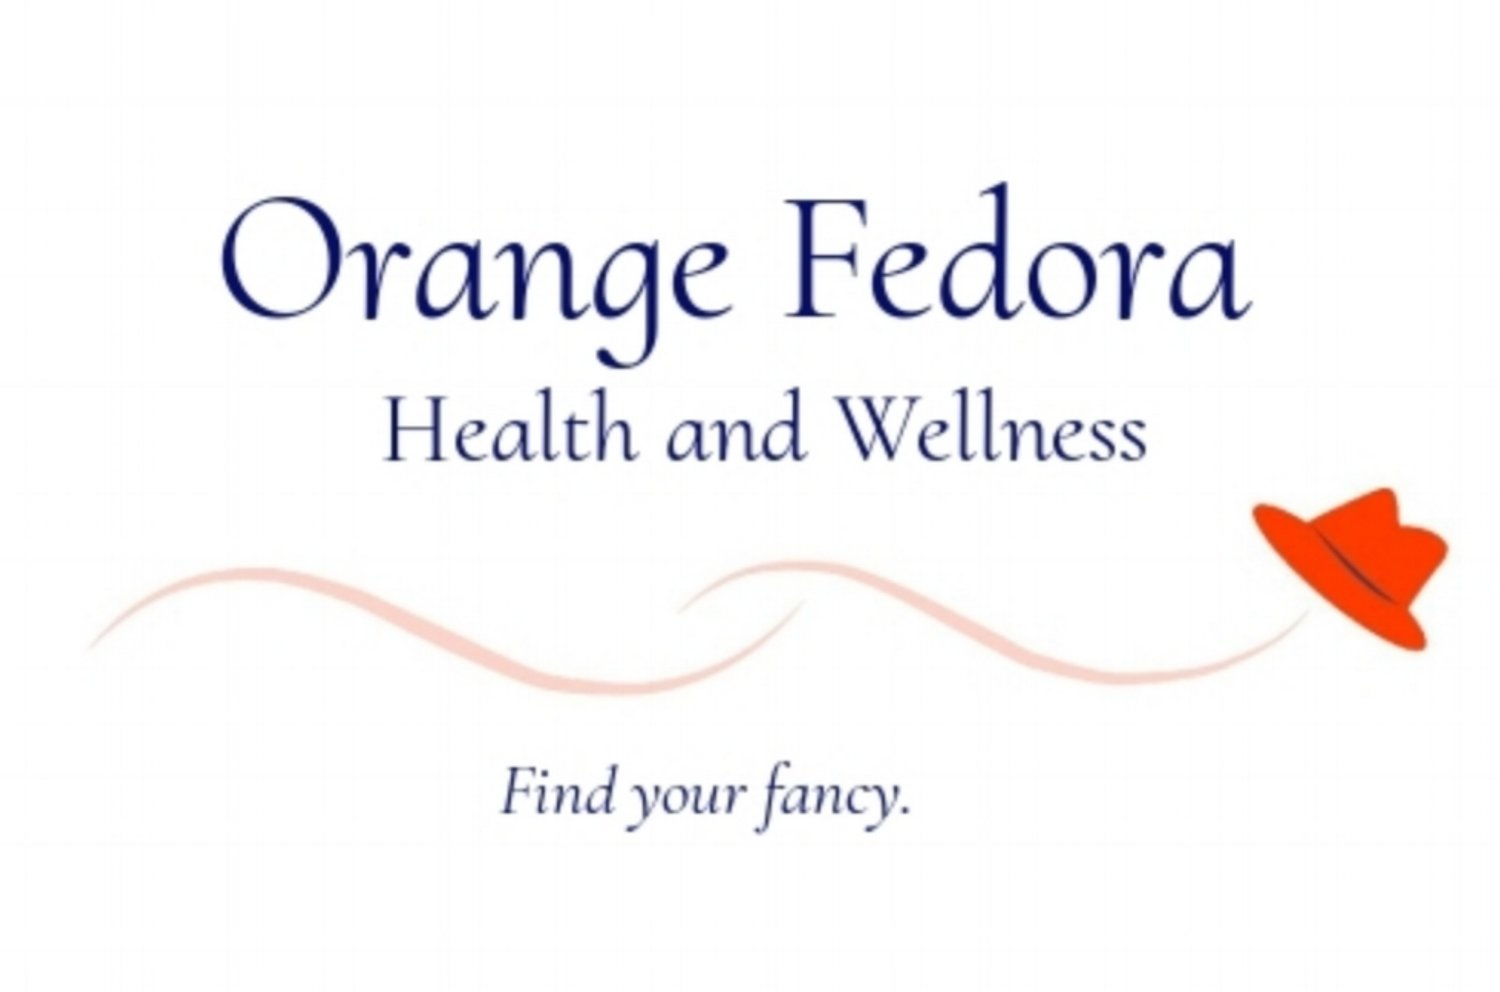 Orange Fedora Health and Wellness